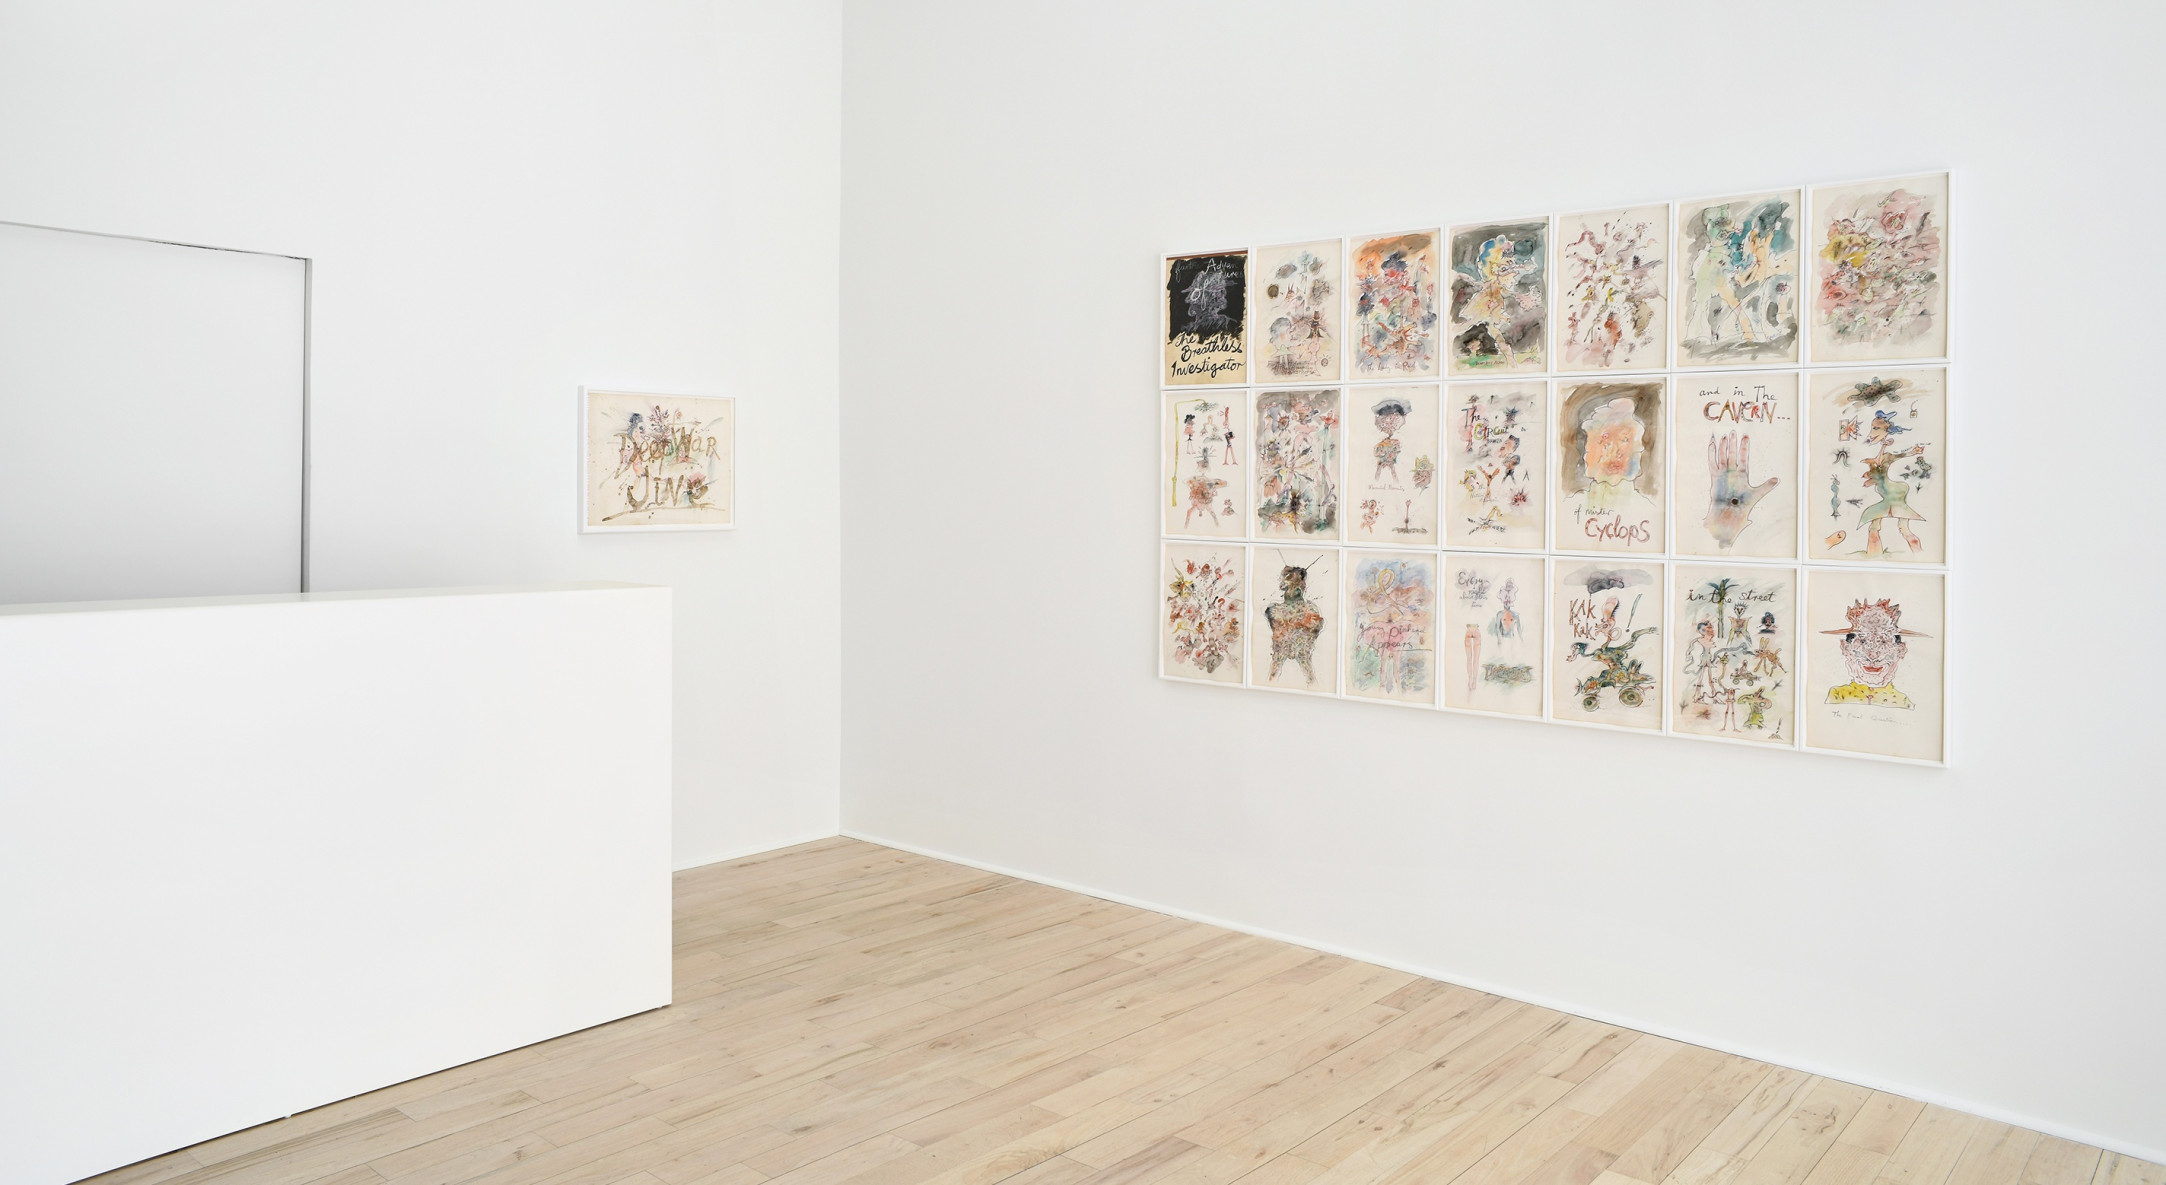 Installation view of Jeff Keen Cineblatz at Hales Gallery Project Room New York, 2018